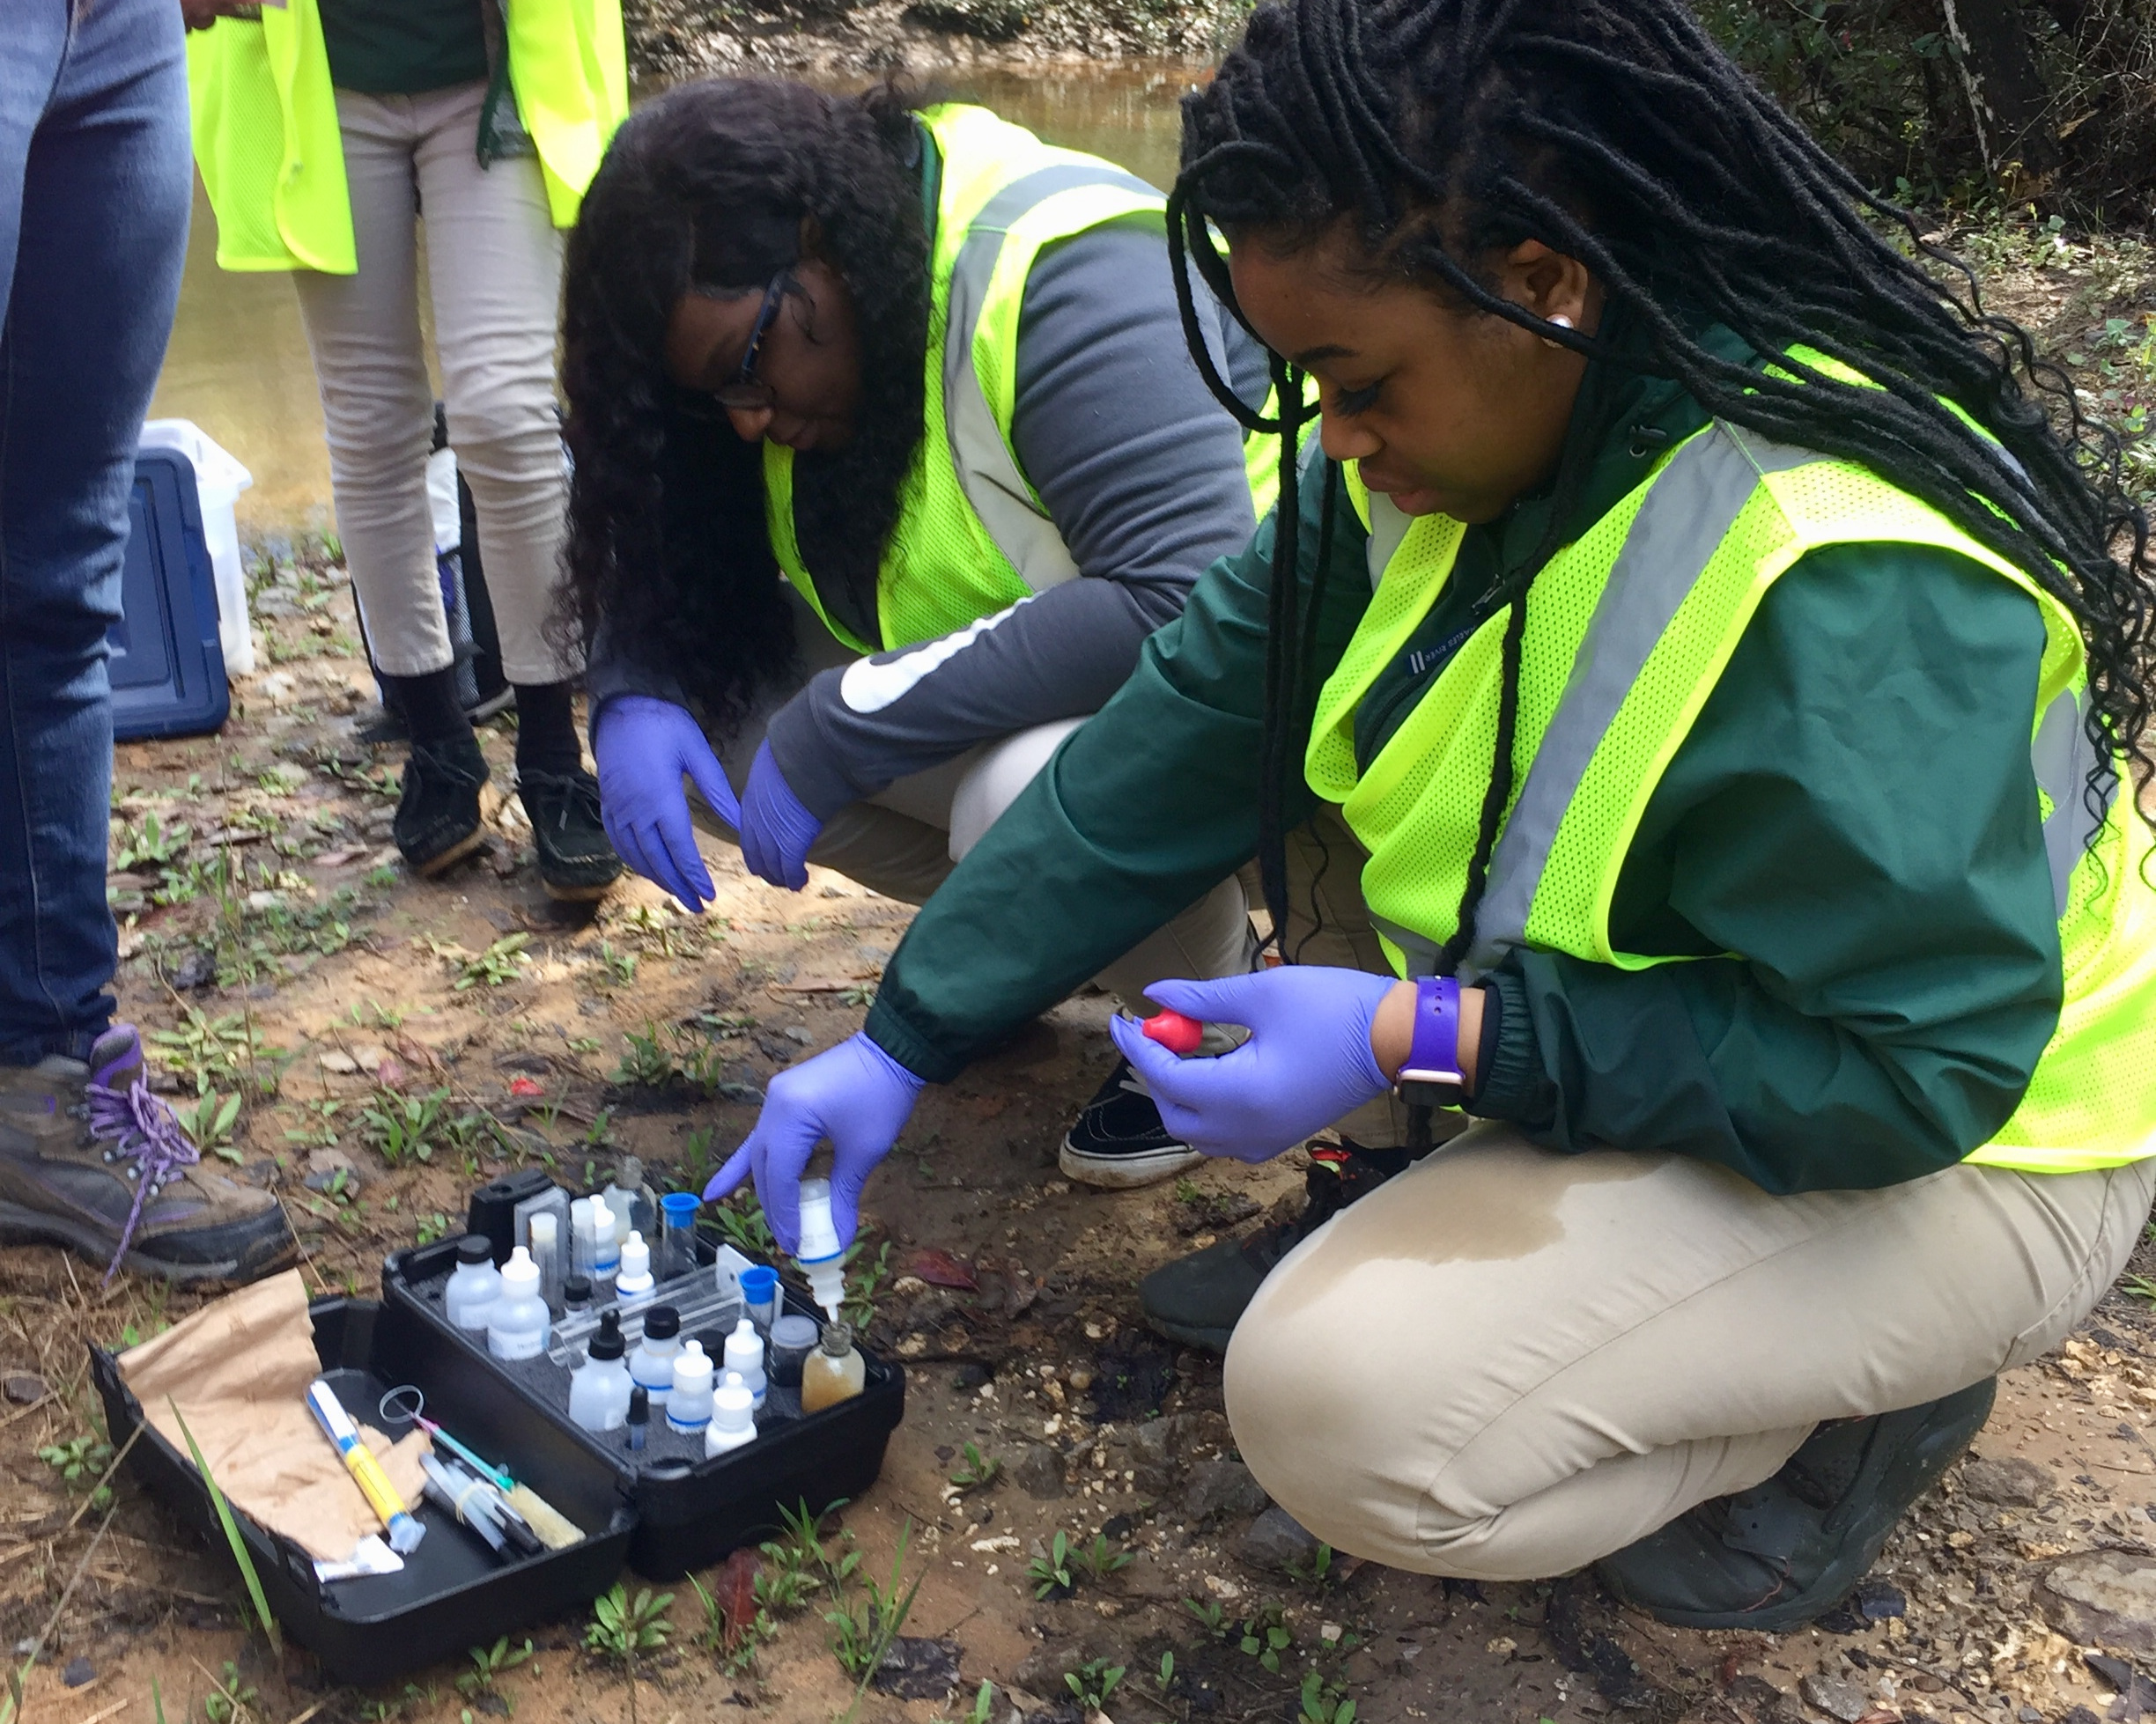 Students at Vigor High School monitor water quality through our Strategic Watershed Awareness & Monitoring Program (SWAMP).